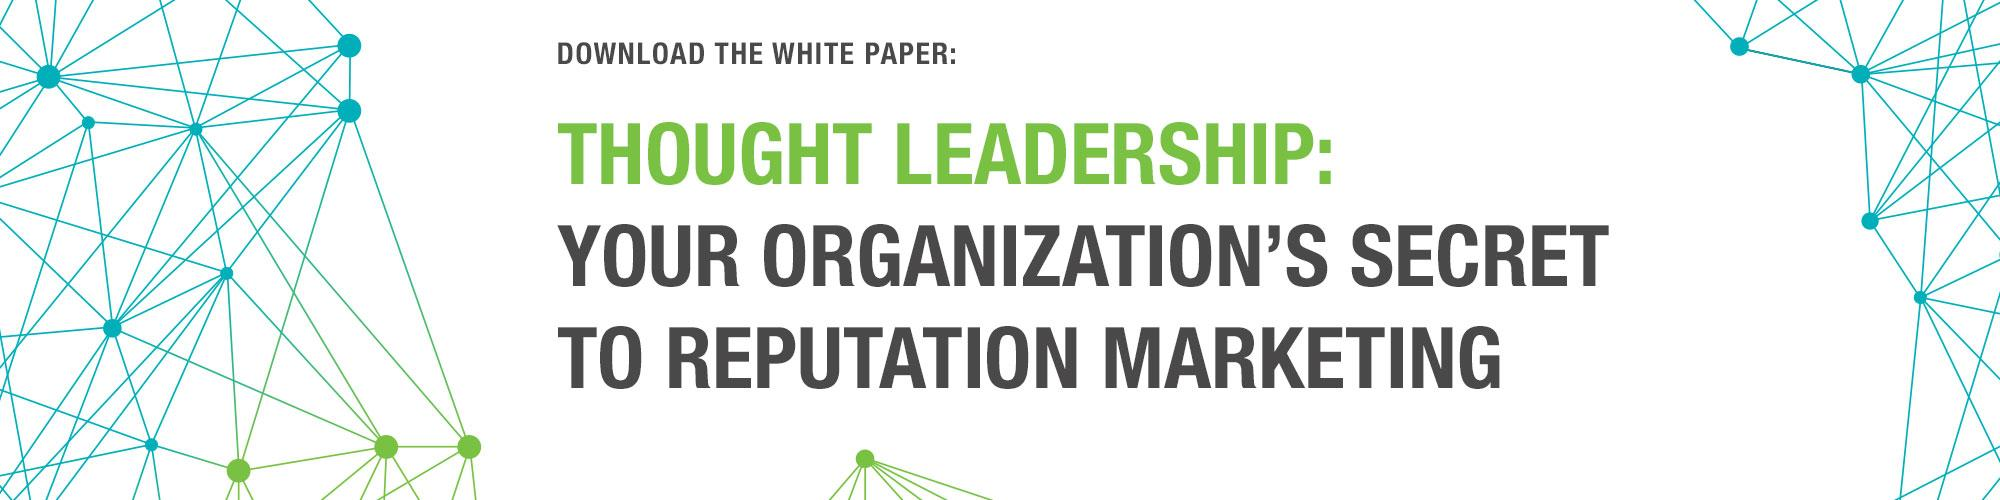 Download the White Paper - Thought Leadership: Your Organization's Secret to Reputation Marketing